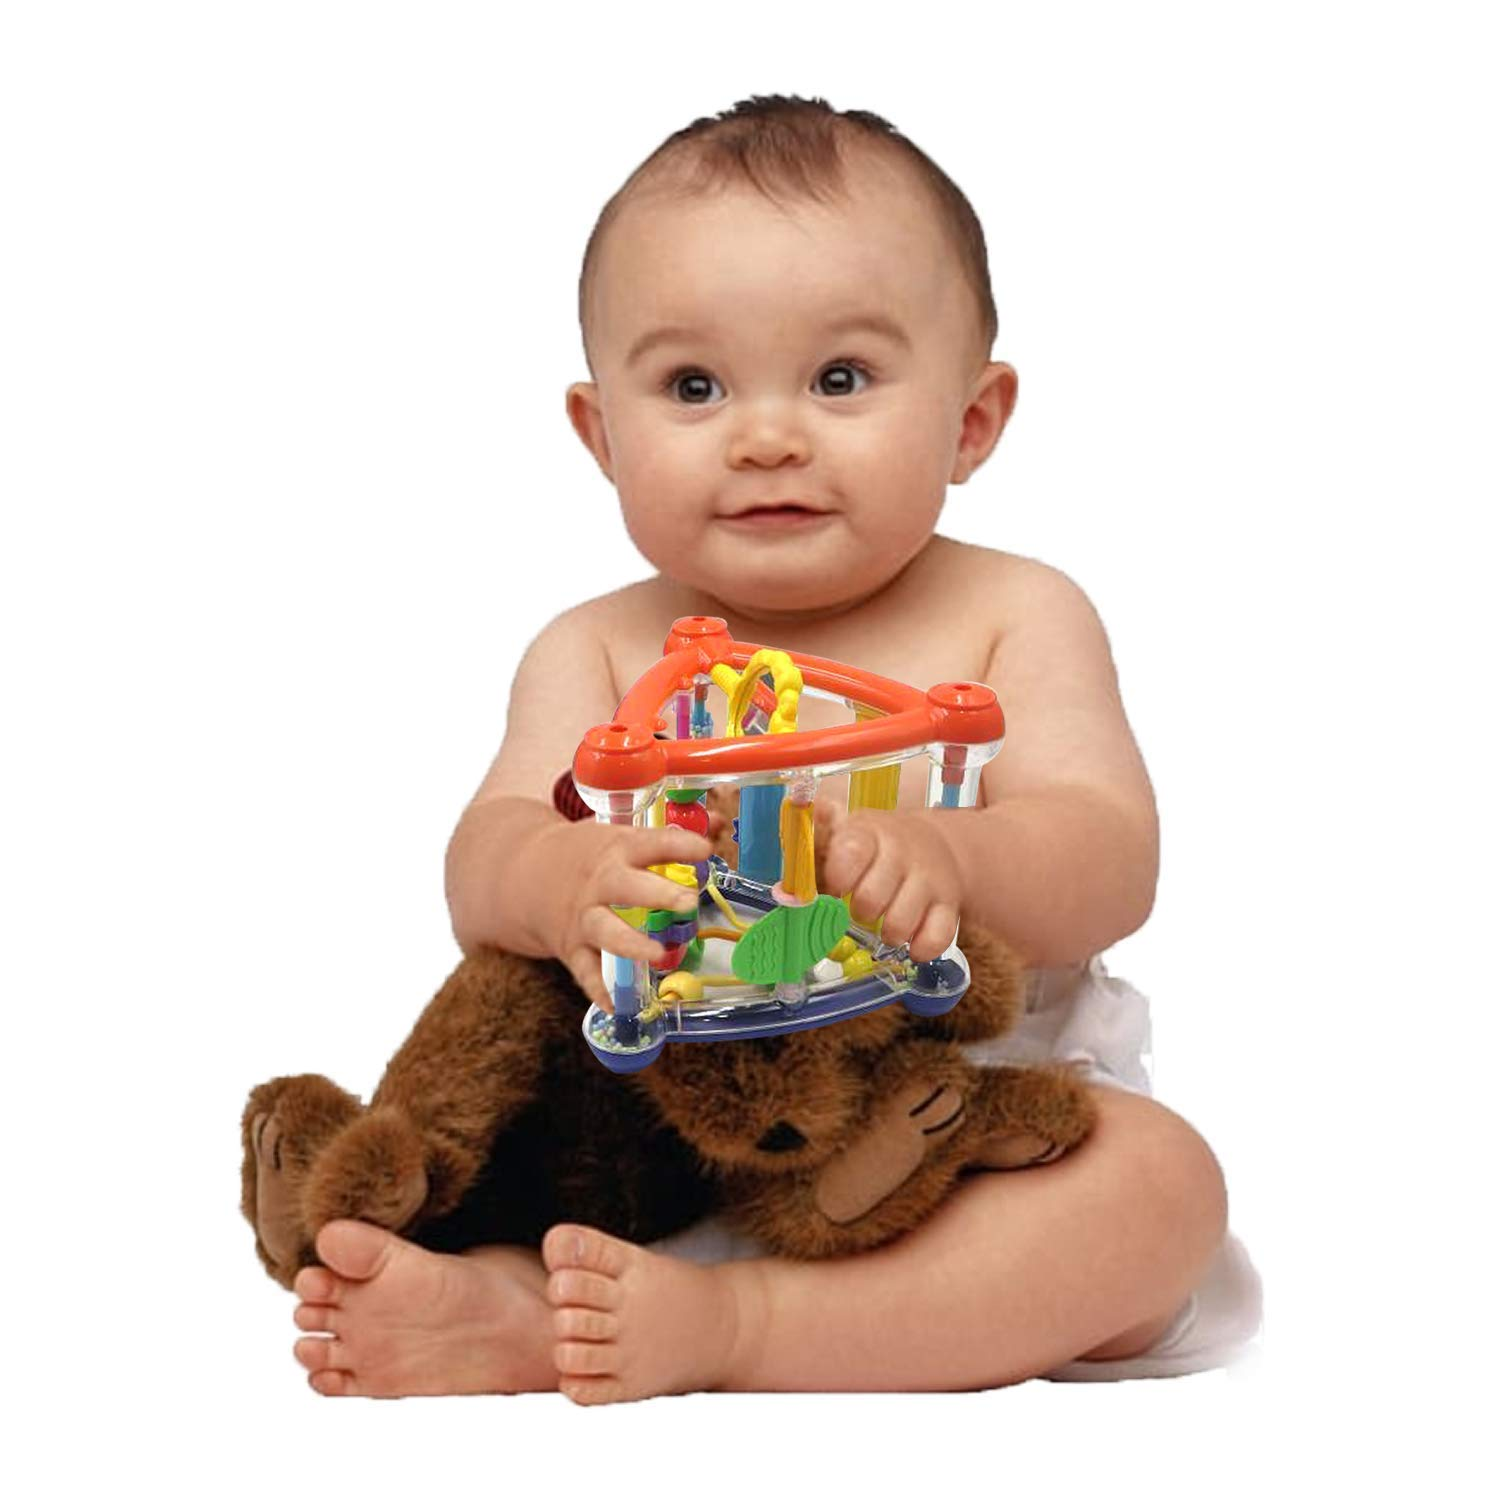 Educational Interactive Play Time Fun for Infants /& Newborn ● Great Gift for Parents 0-12 Months Baby Toy Activity Vimvo Hanging Cube Toys Learning